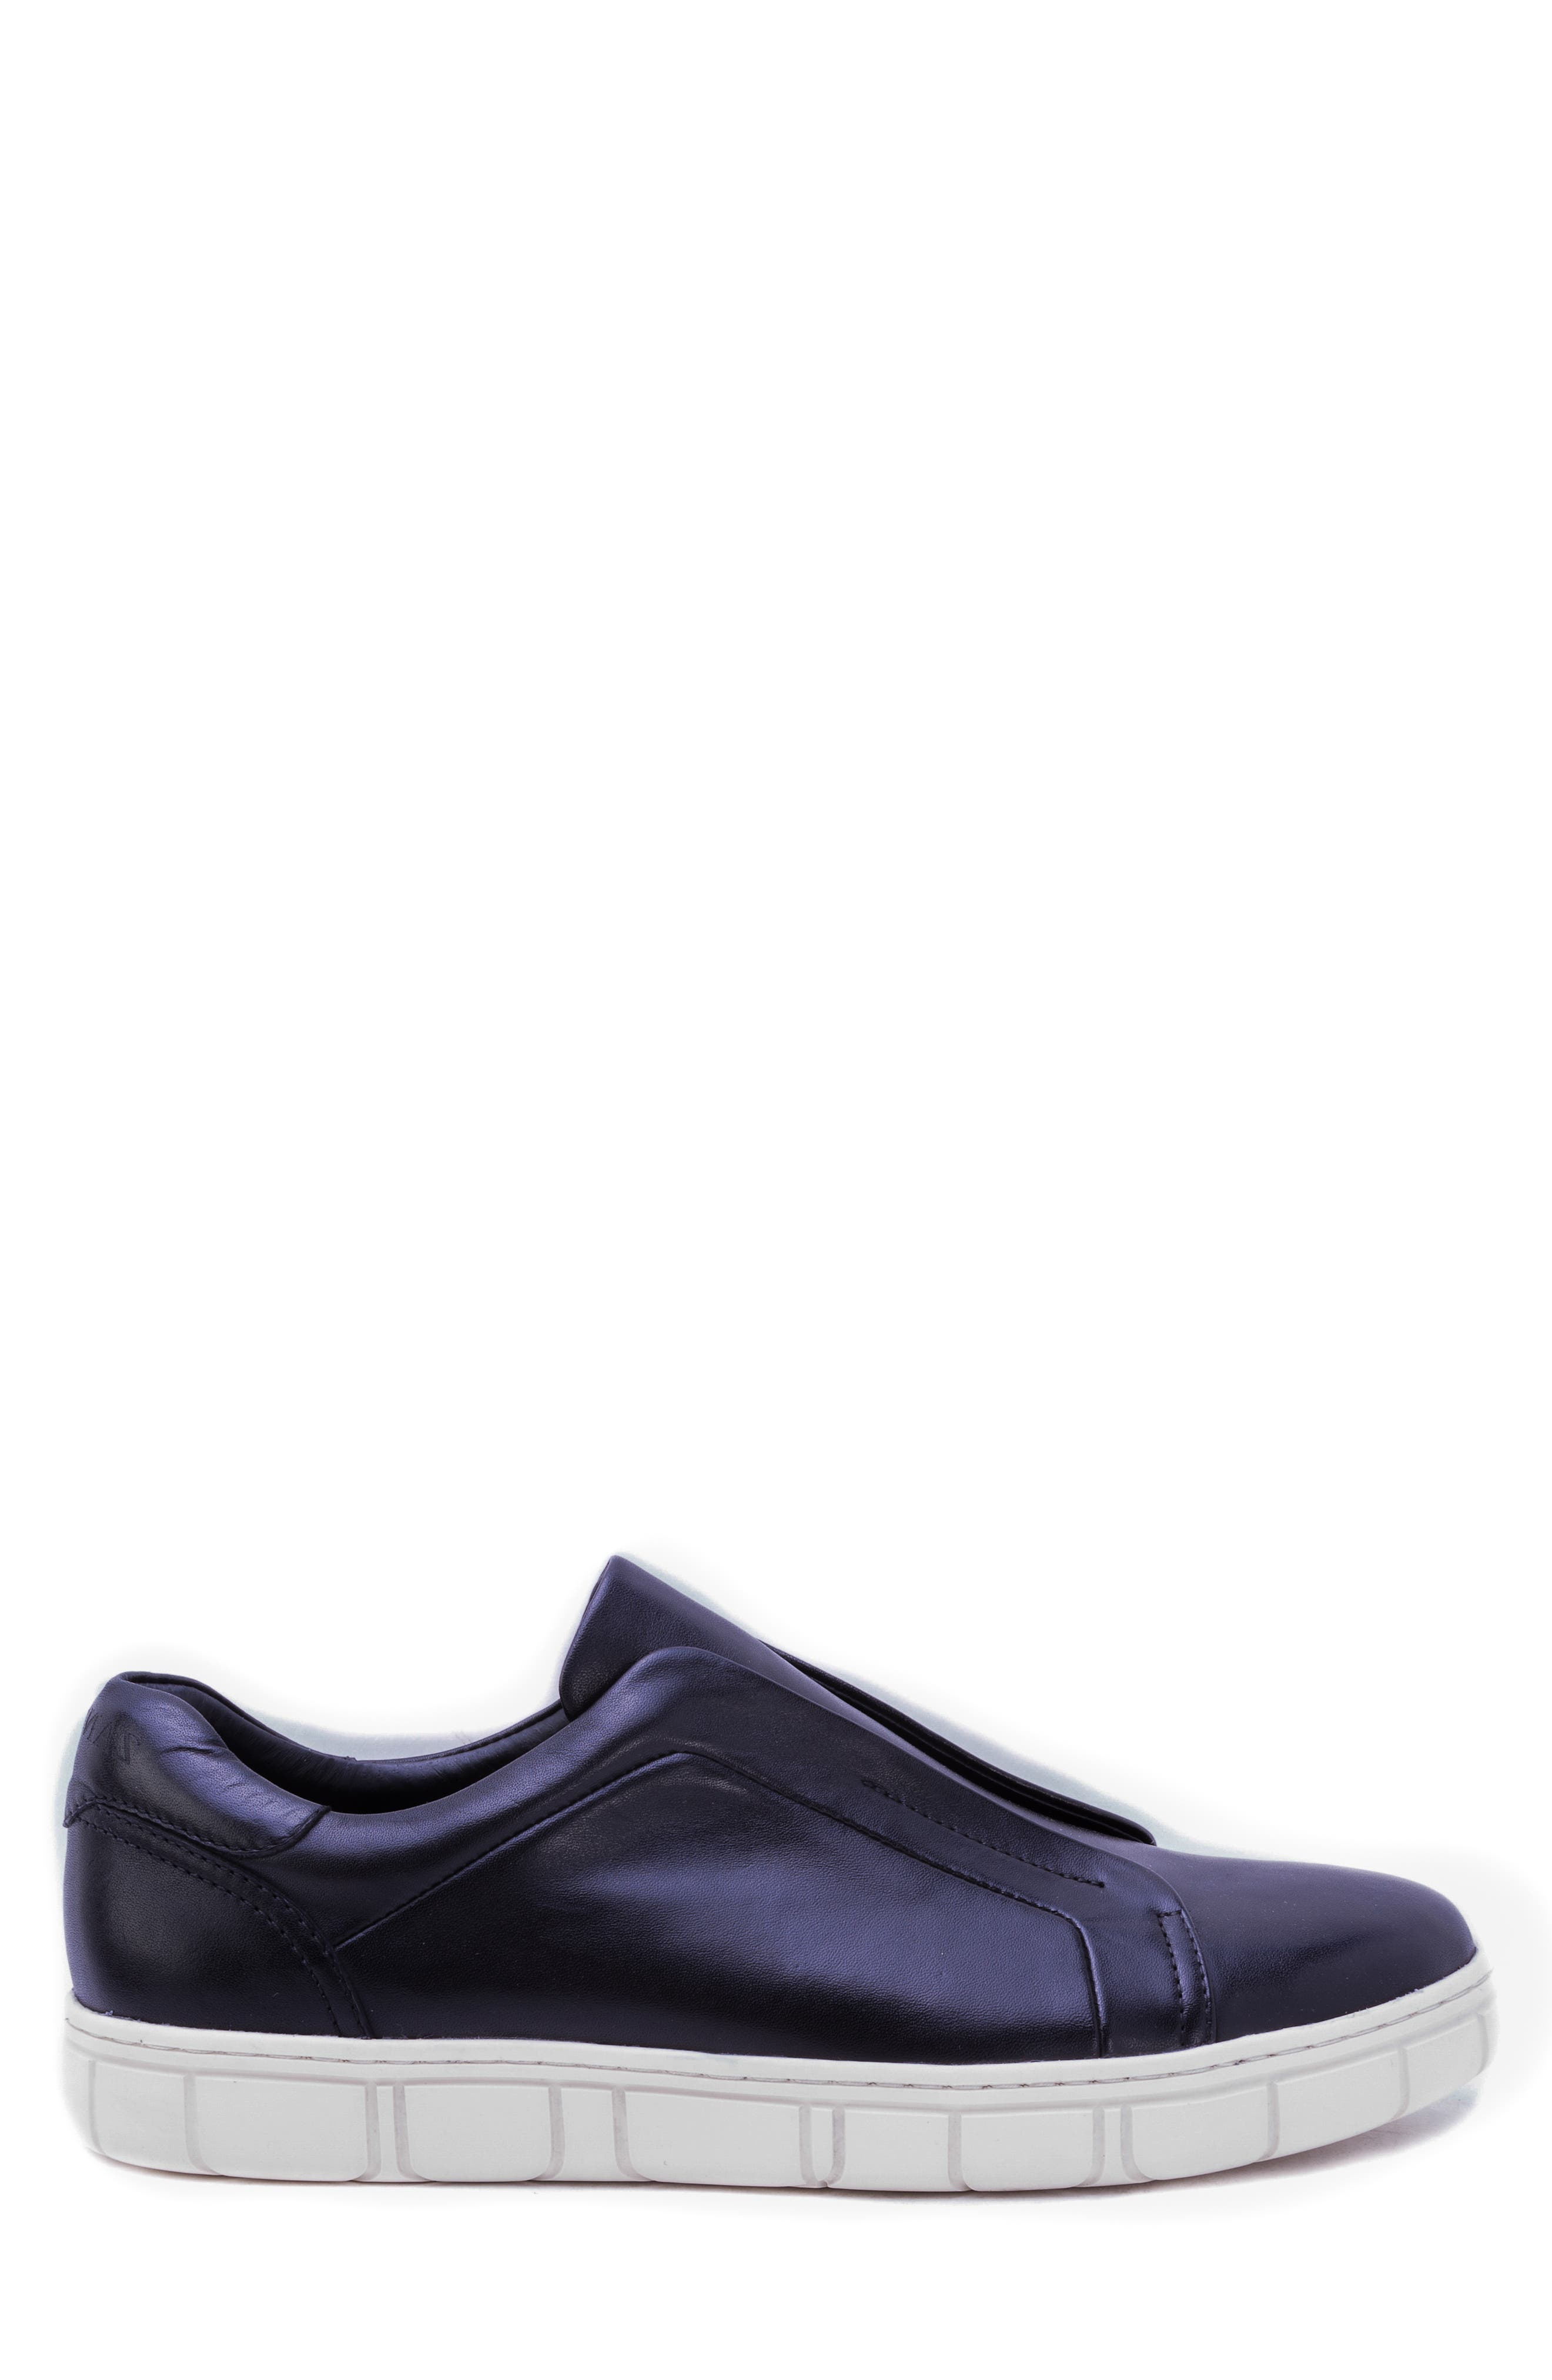 Sorgh Laceless Sneaker,                             Alternate thumbnail 3, color,                             BLACK LEATHER